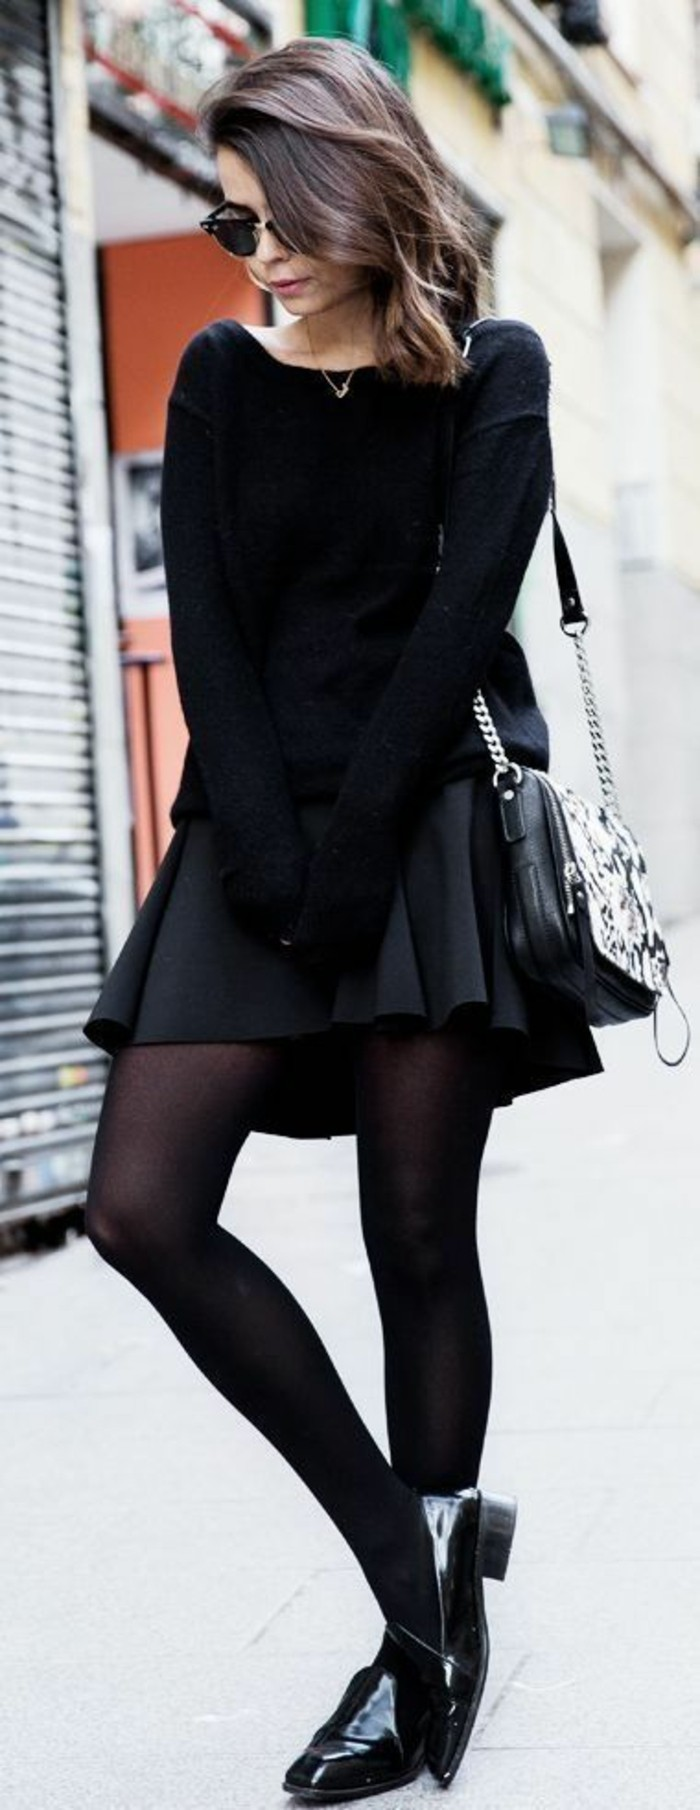 casual business attire, brunette woman with sunglasses, wearing an all-black outfit, with skirt and sweater, tights and flat patent leather shoes